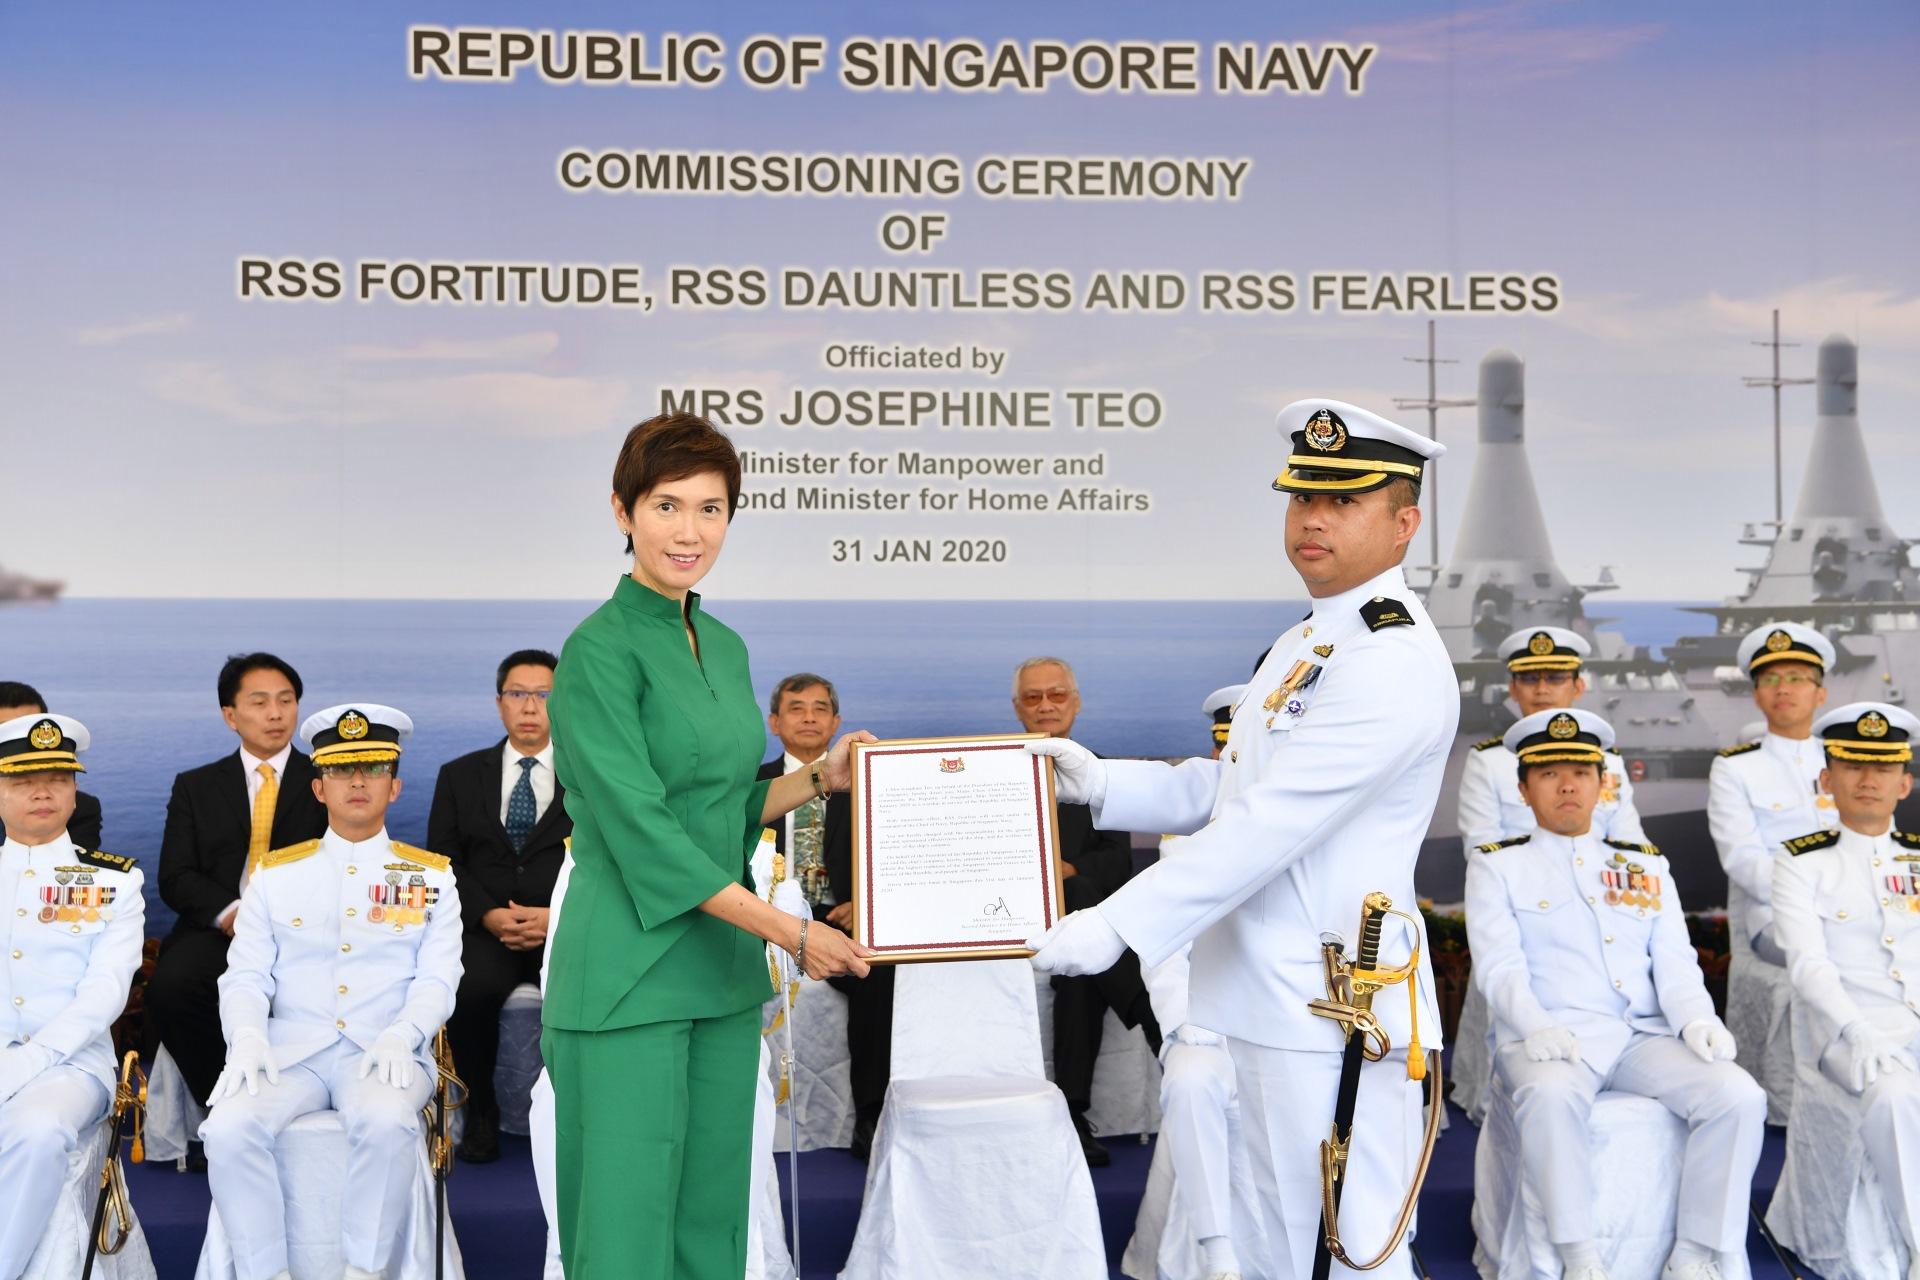 Mrs Teo presenting the Commissioning Warrant to Commanding Officer of RSS Fearless, Major Chew Chun Cheong.